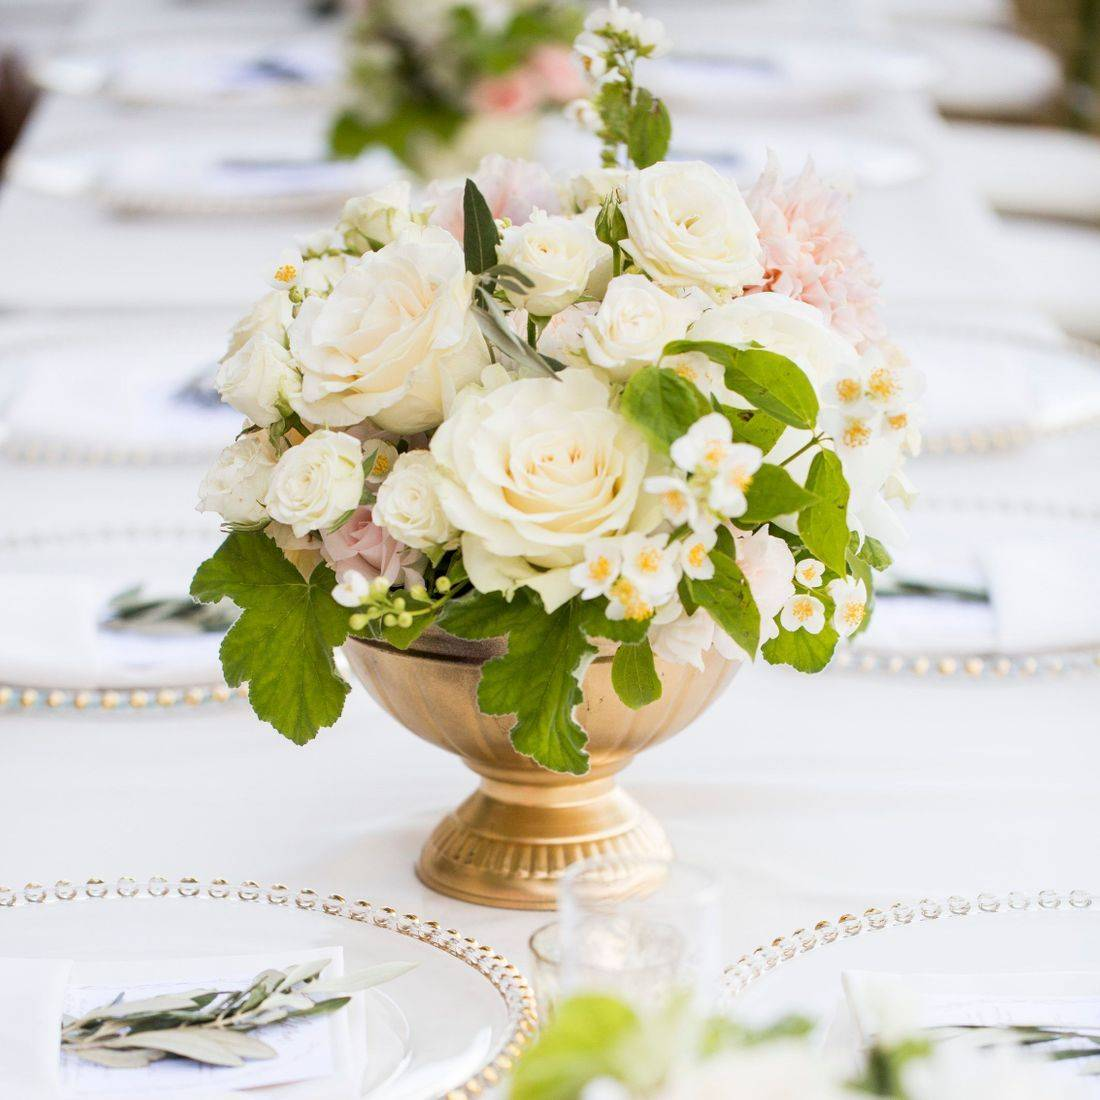 WEDDING PLANNER IN BAY AREA